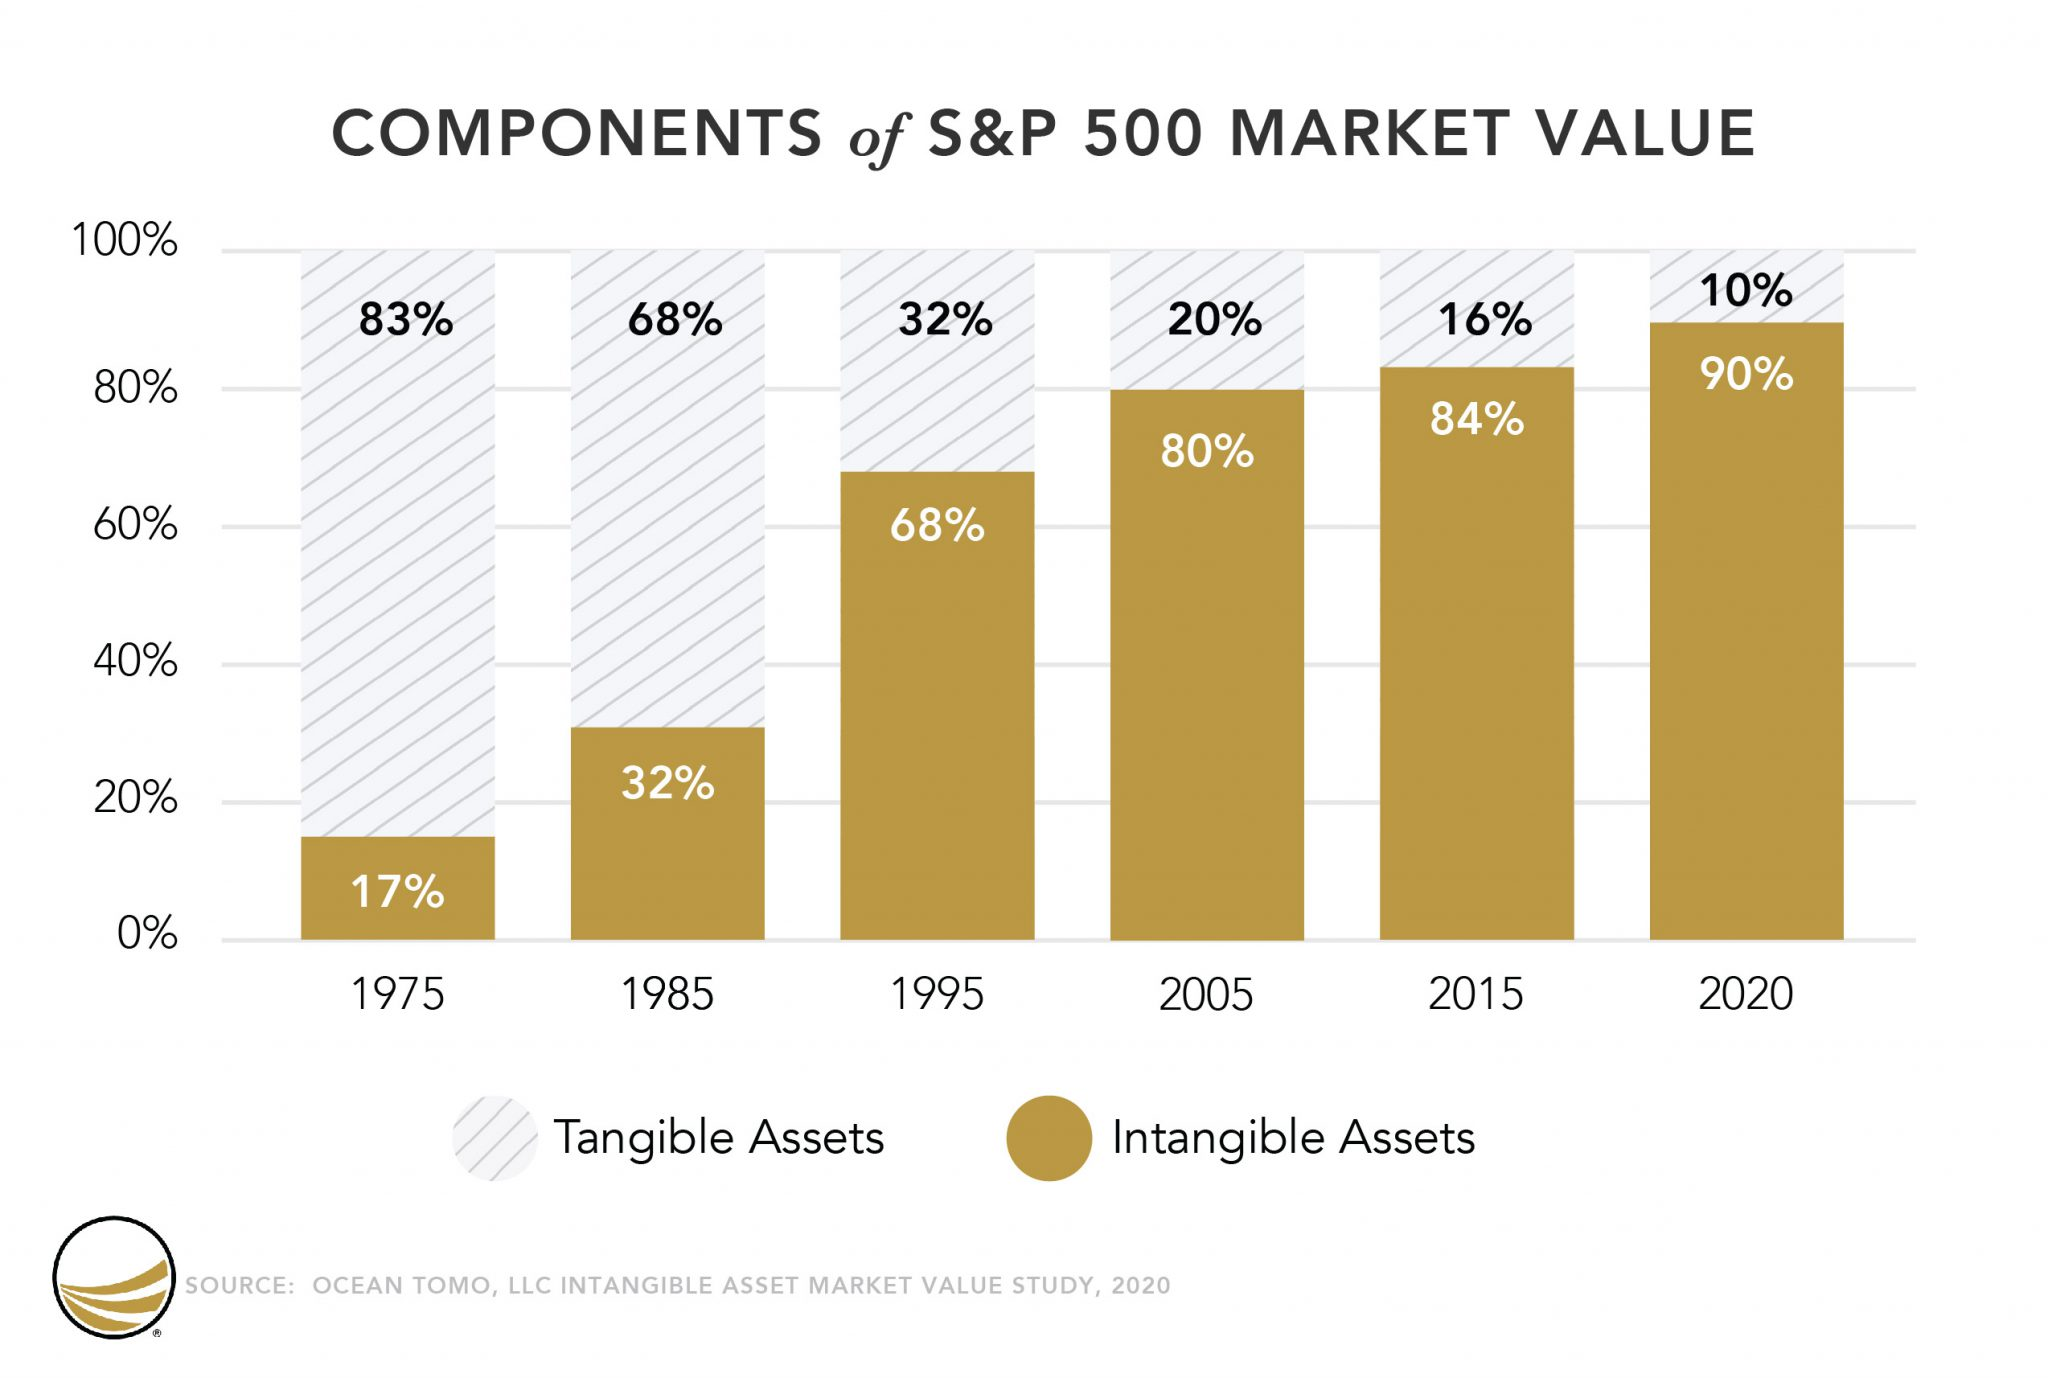 Results_1_1_2020_S&P500_10_Year_No_Asterisk